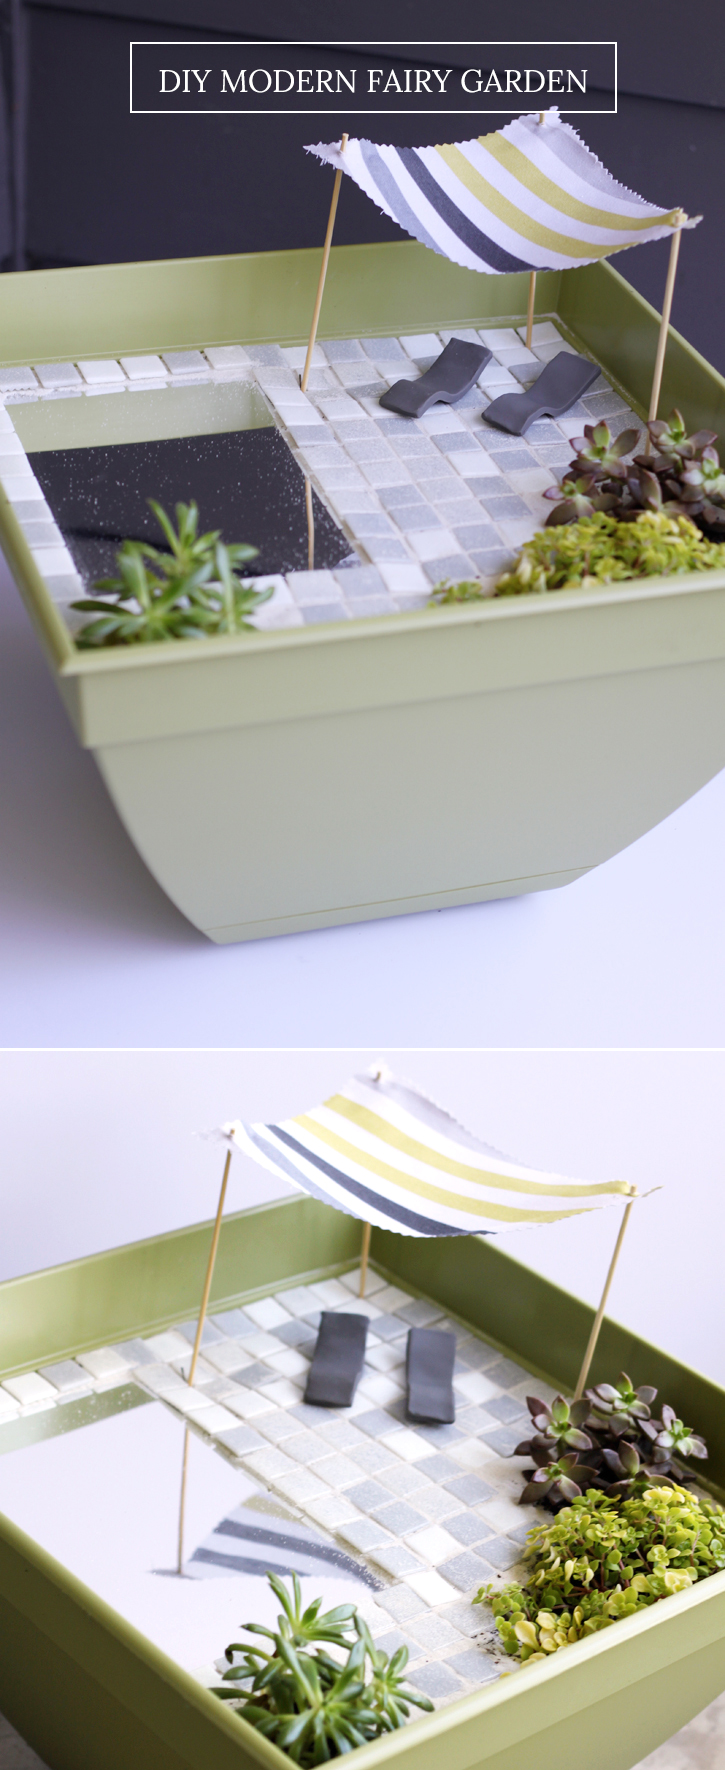 DIY Modern Fairy Garden tutorial - mirror for a pond!